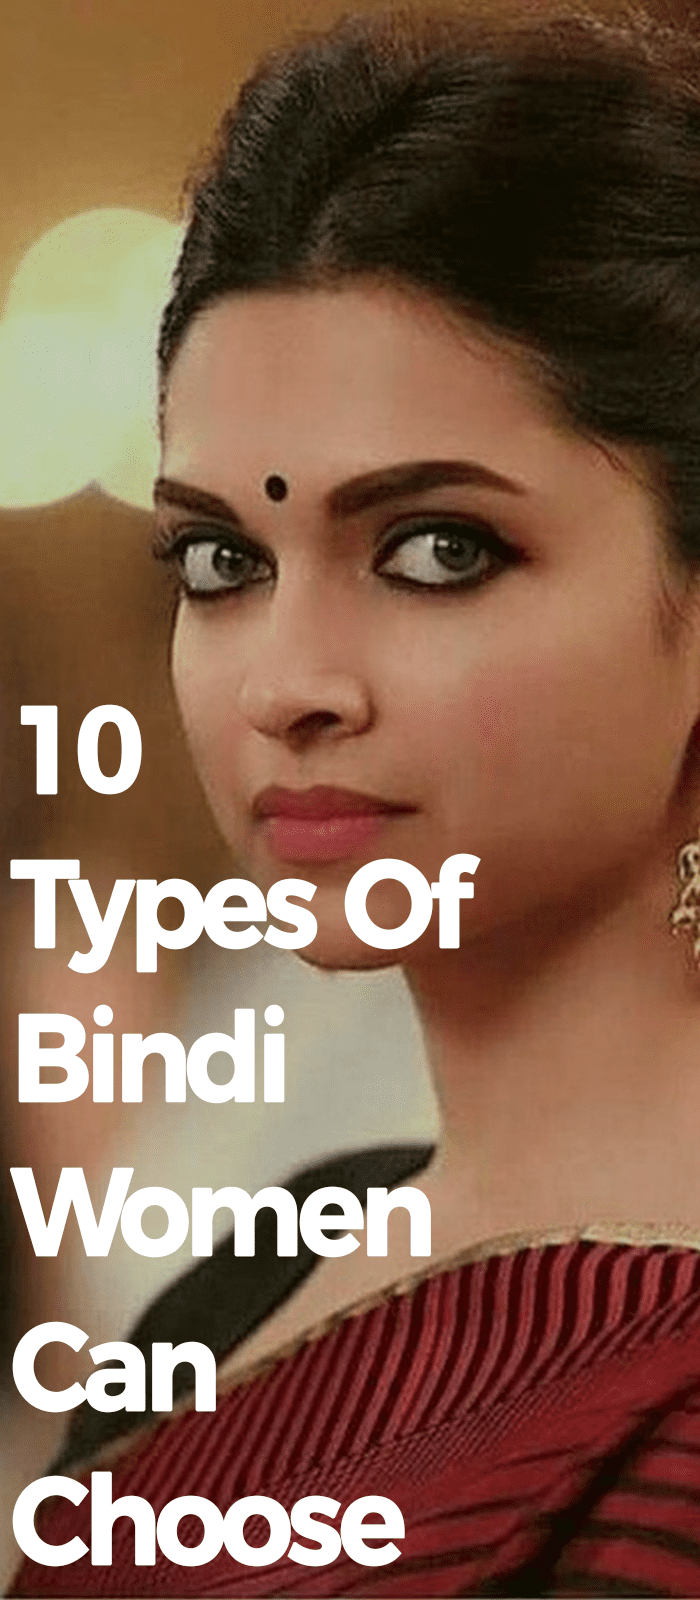 10 Types Of Bindi Women Can Choose from